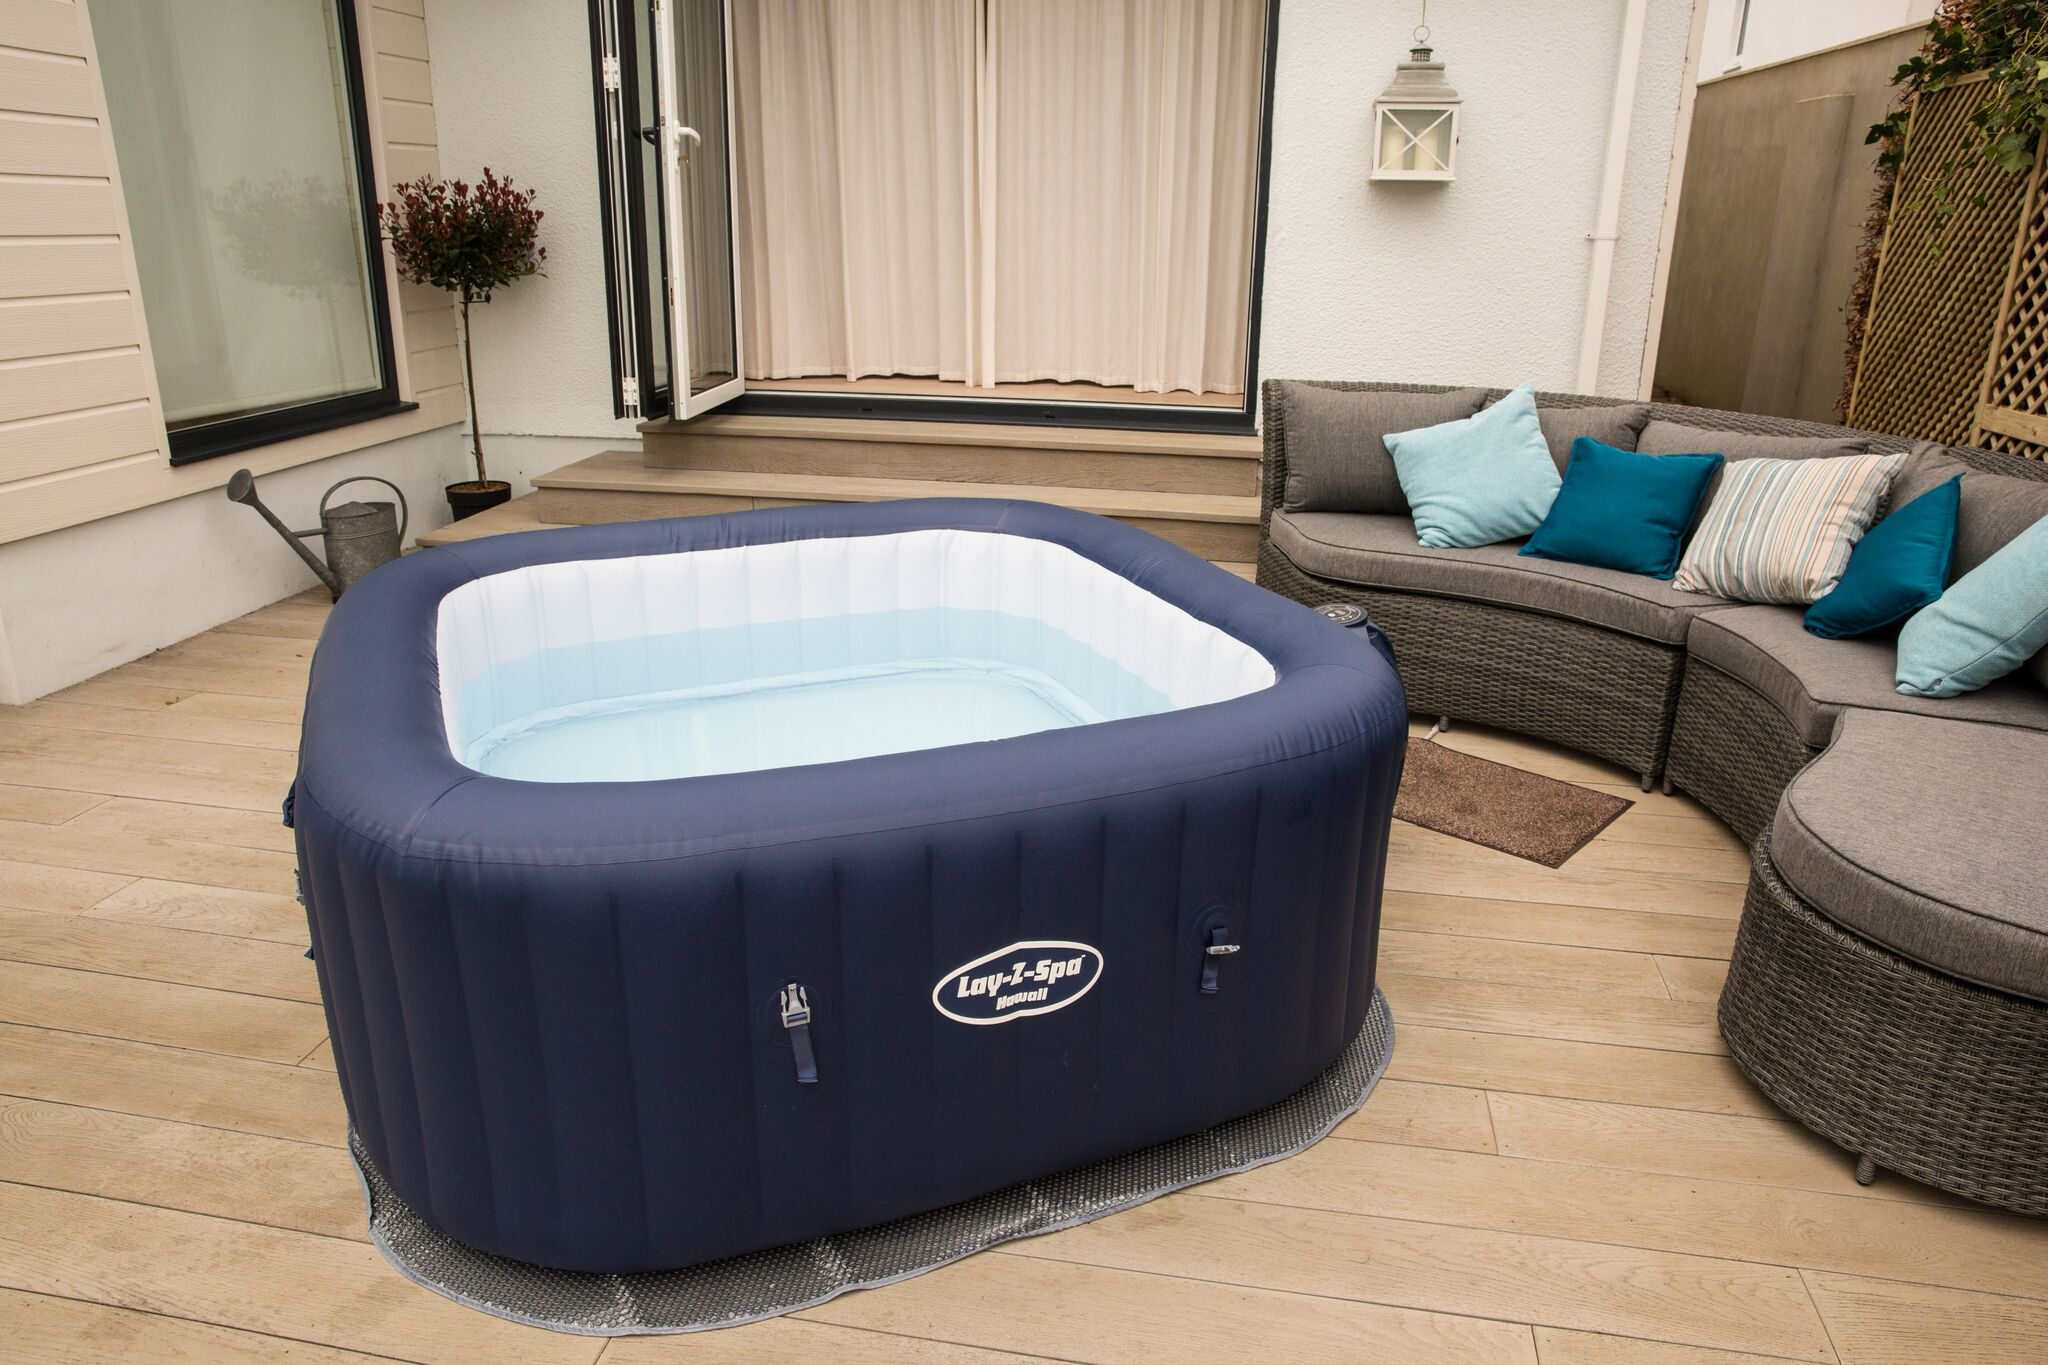 spas gonflables bestway le confort d un jaccuzzi port e de clic mypiscine blog. Black Bedroom Furniture Sets. Home Design Ideas